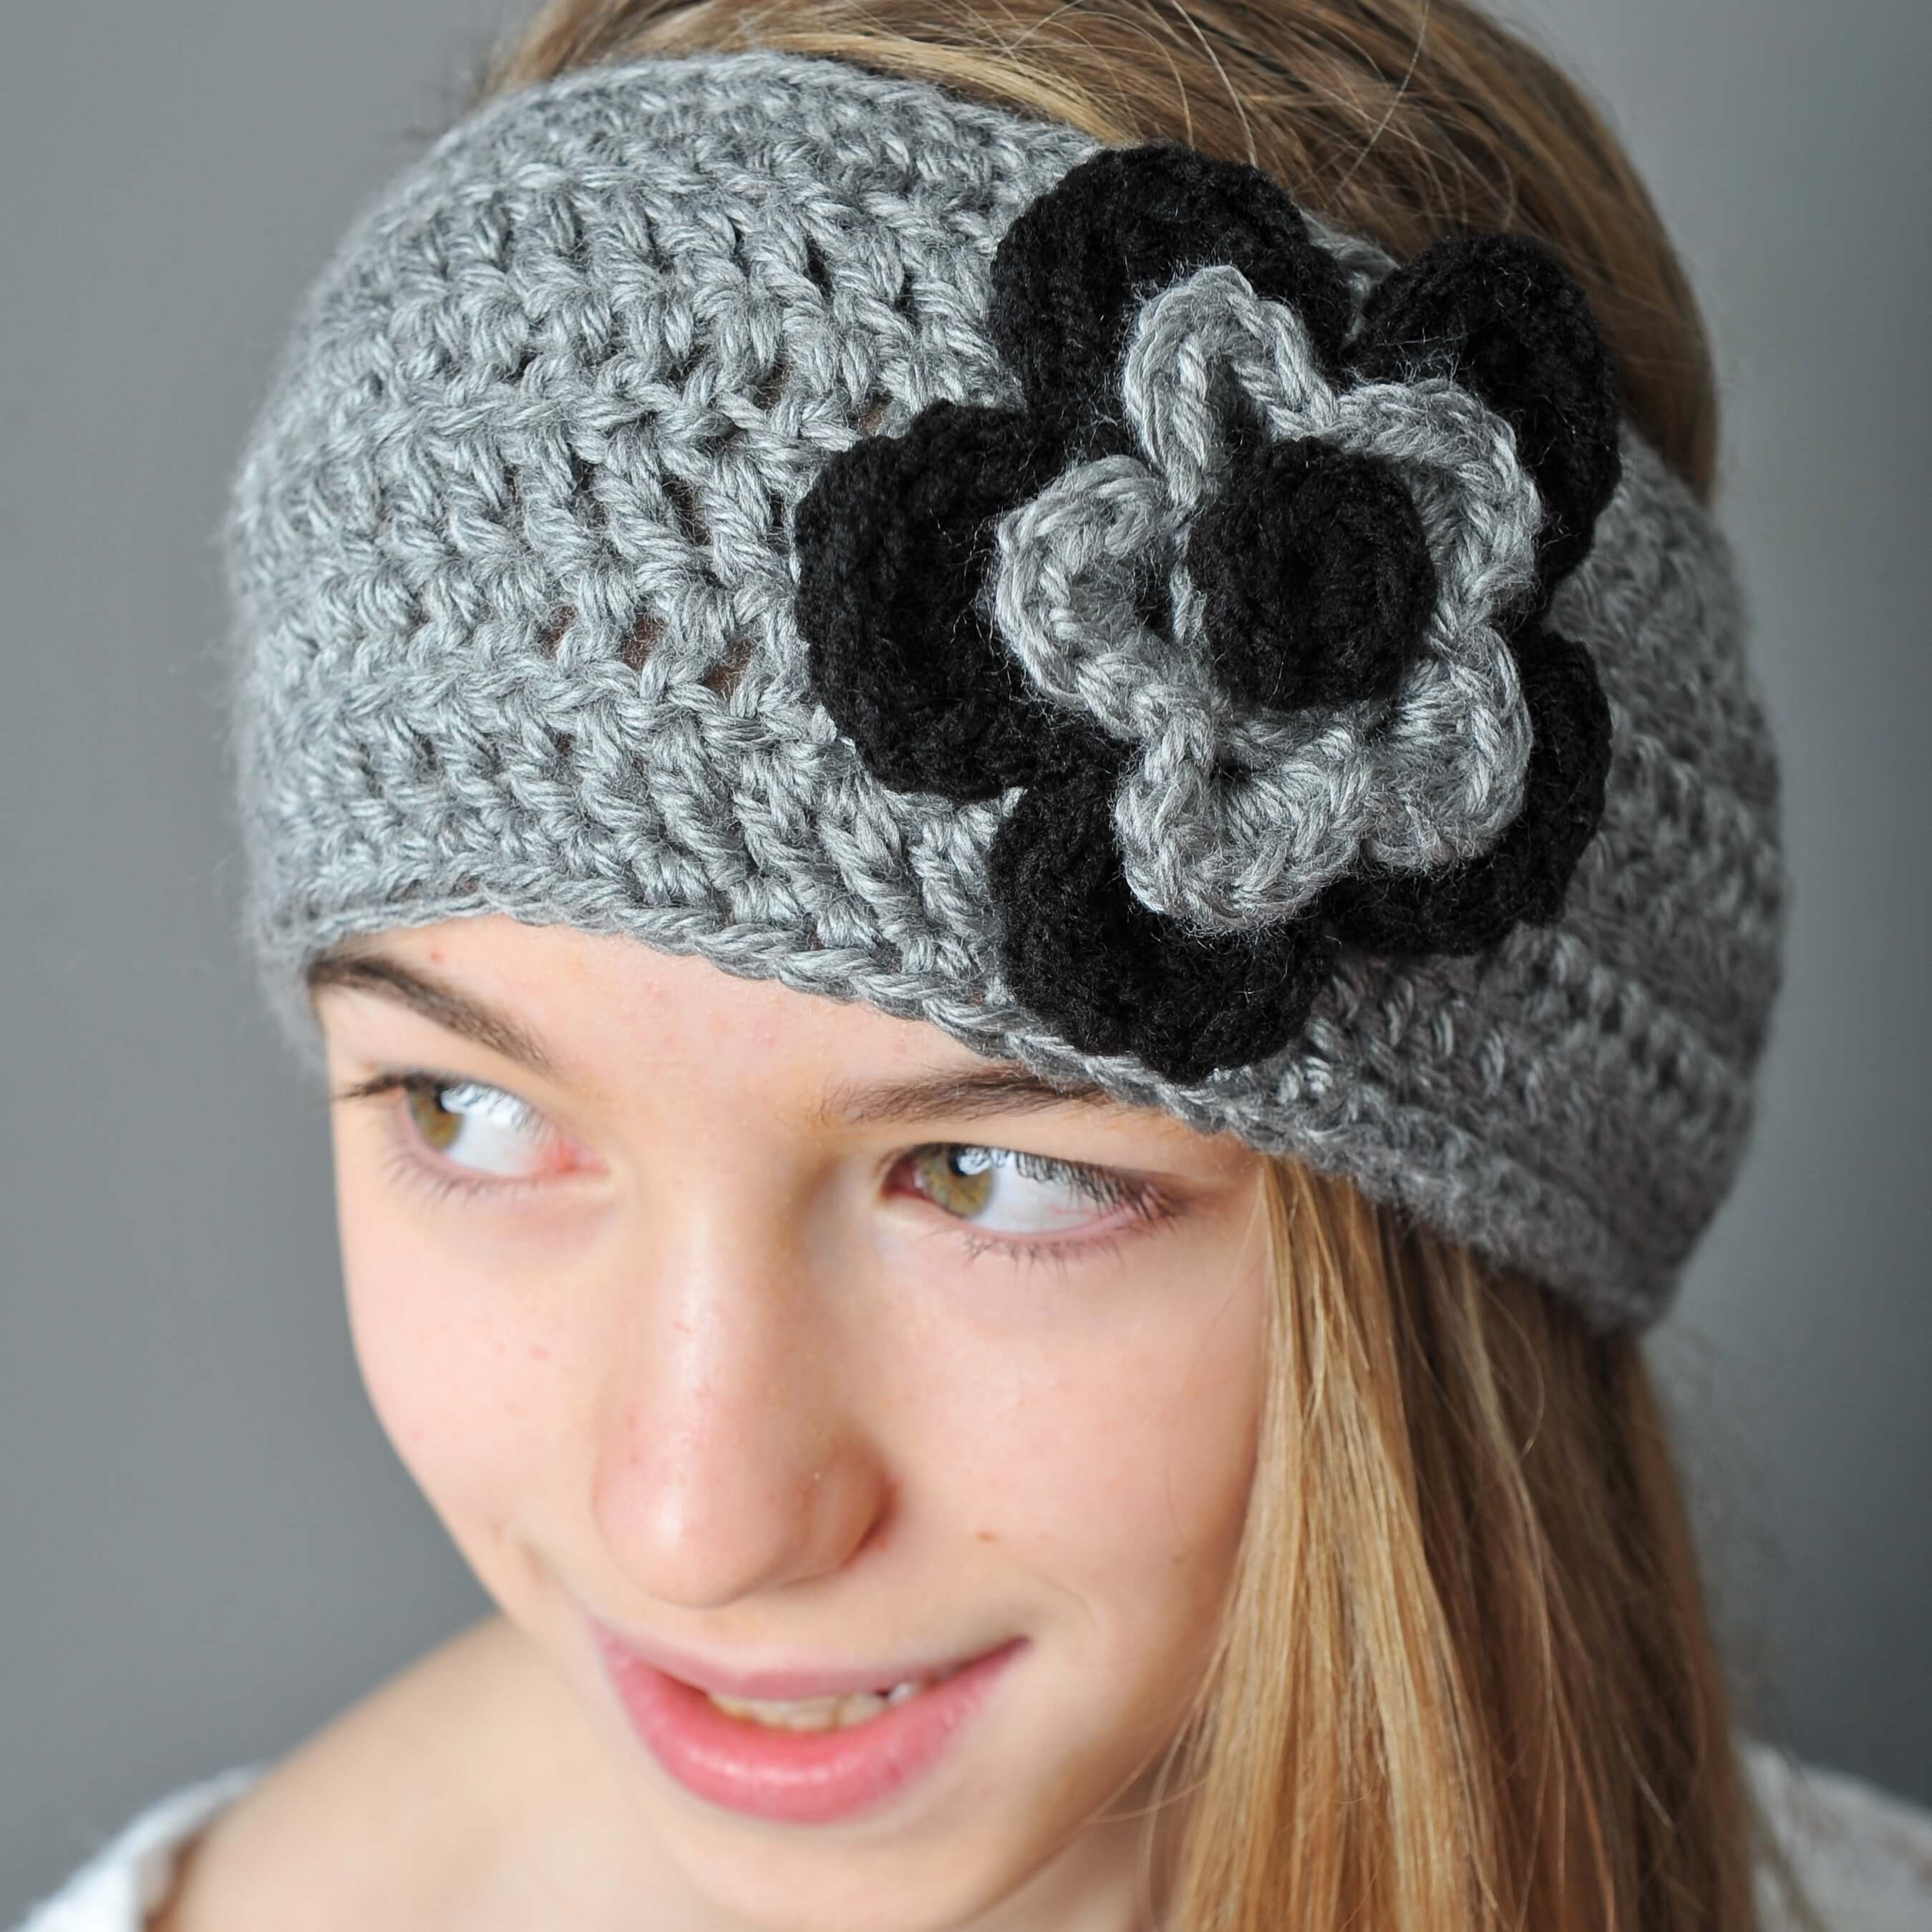 Free Crochet Pattern Headband Ear Warmer Button : Crochet Ear Warmer with Layered Flowers - Petals to Picots